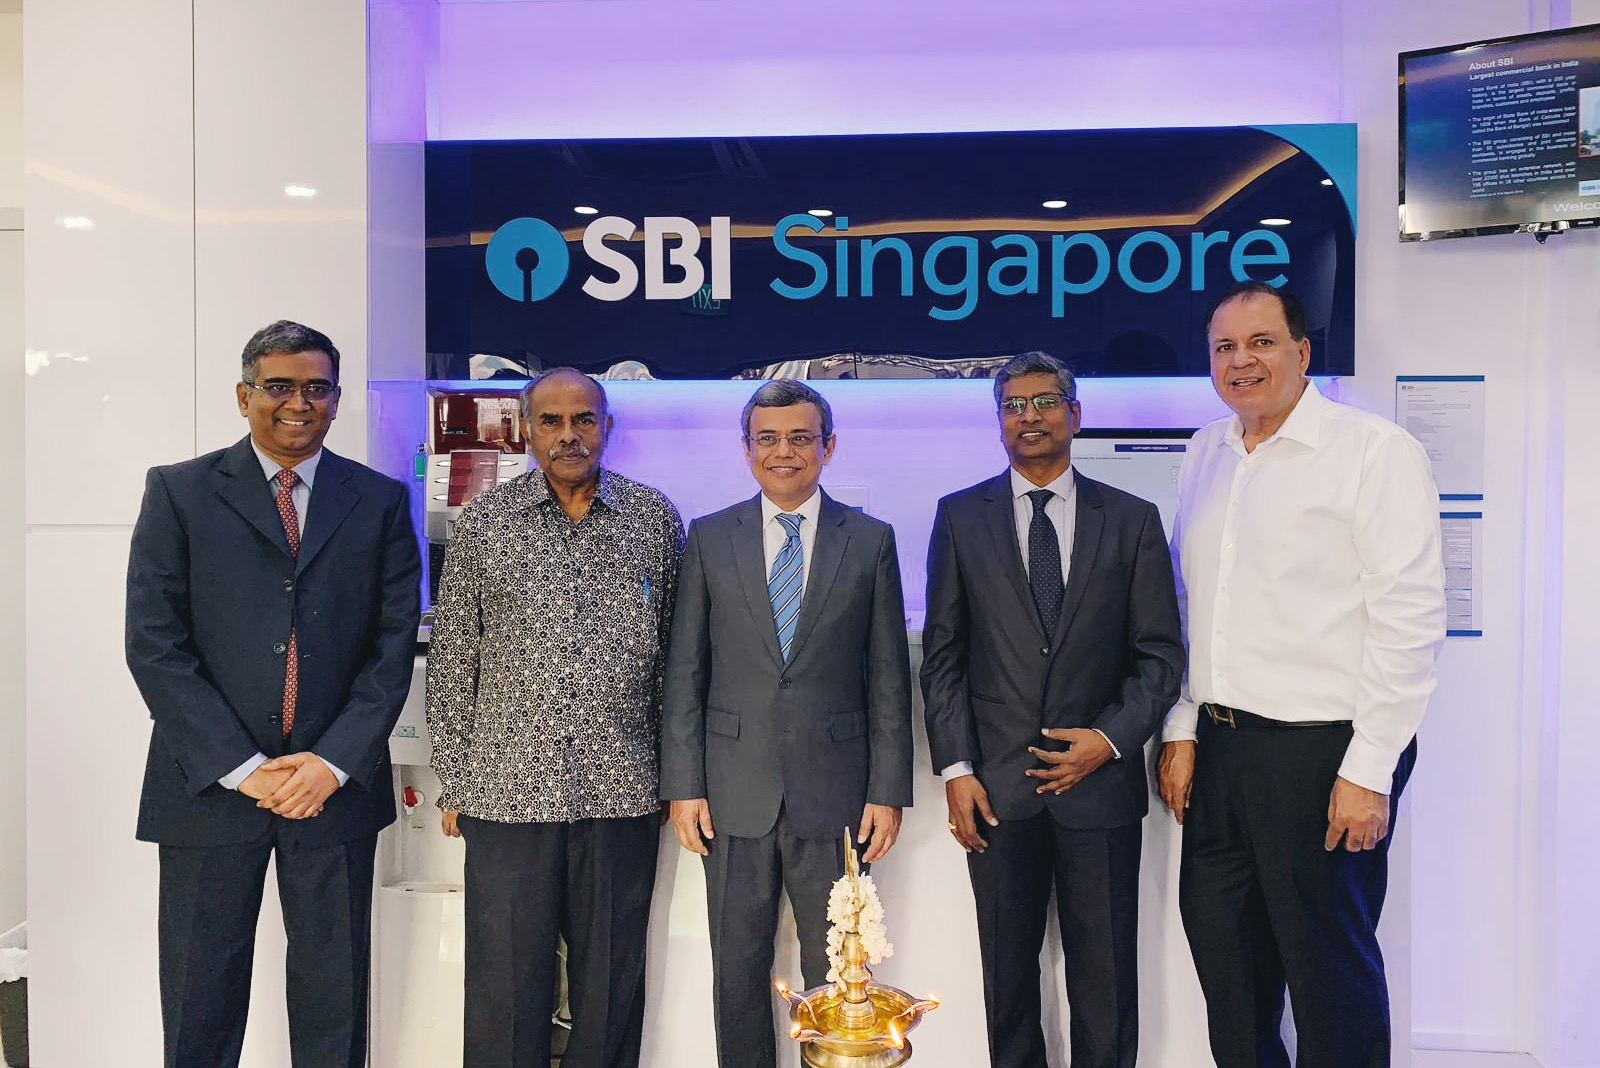 (from left) P. Jamneshwar, Chief Executive Officer, SBI Singapore; Ambassador K Kesavapany; High Commissioner of India to Singapore Jawed Ashraf; Kishore Kumar Poludasu, Country Head of SBI Singapore; and Narandas Gangaram, Radha Exports, at the launch of State Bank of India (SBI) Singapore's new Jurong East branch. Photo: Connected to India